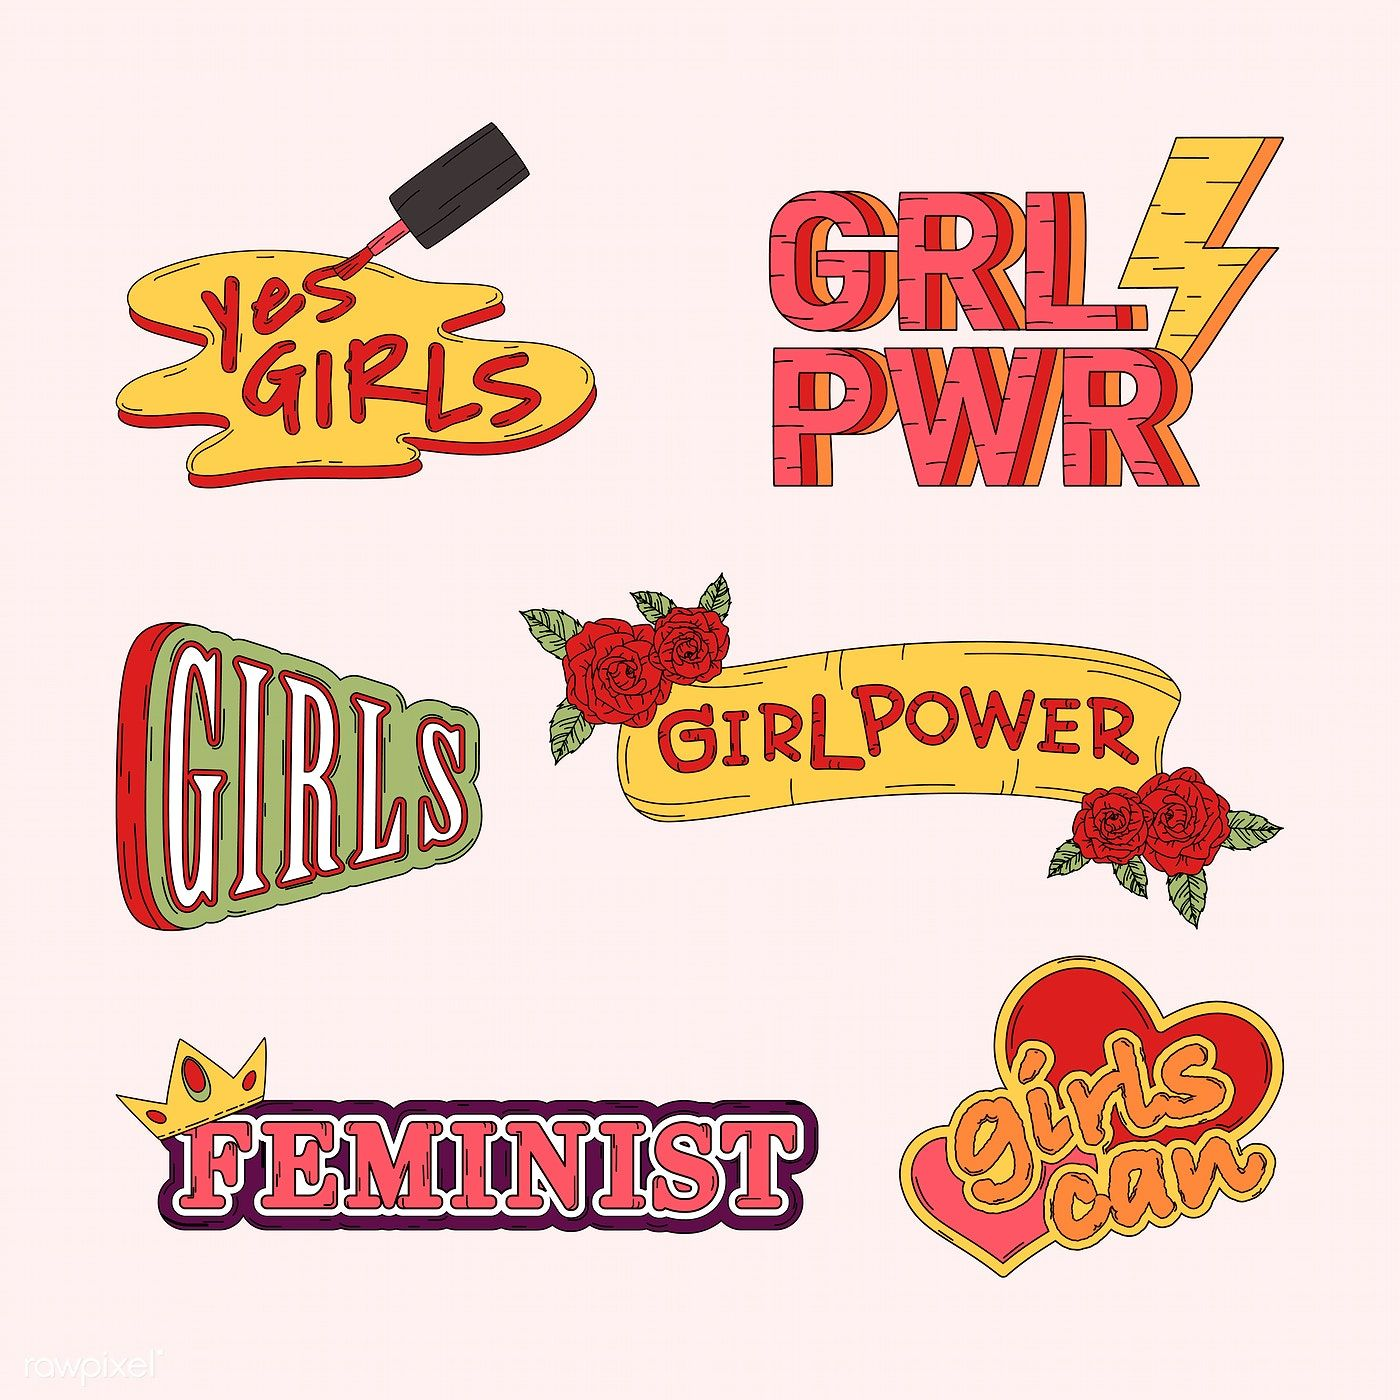 Collection of girl power vectors | free image by rawpixel